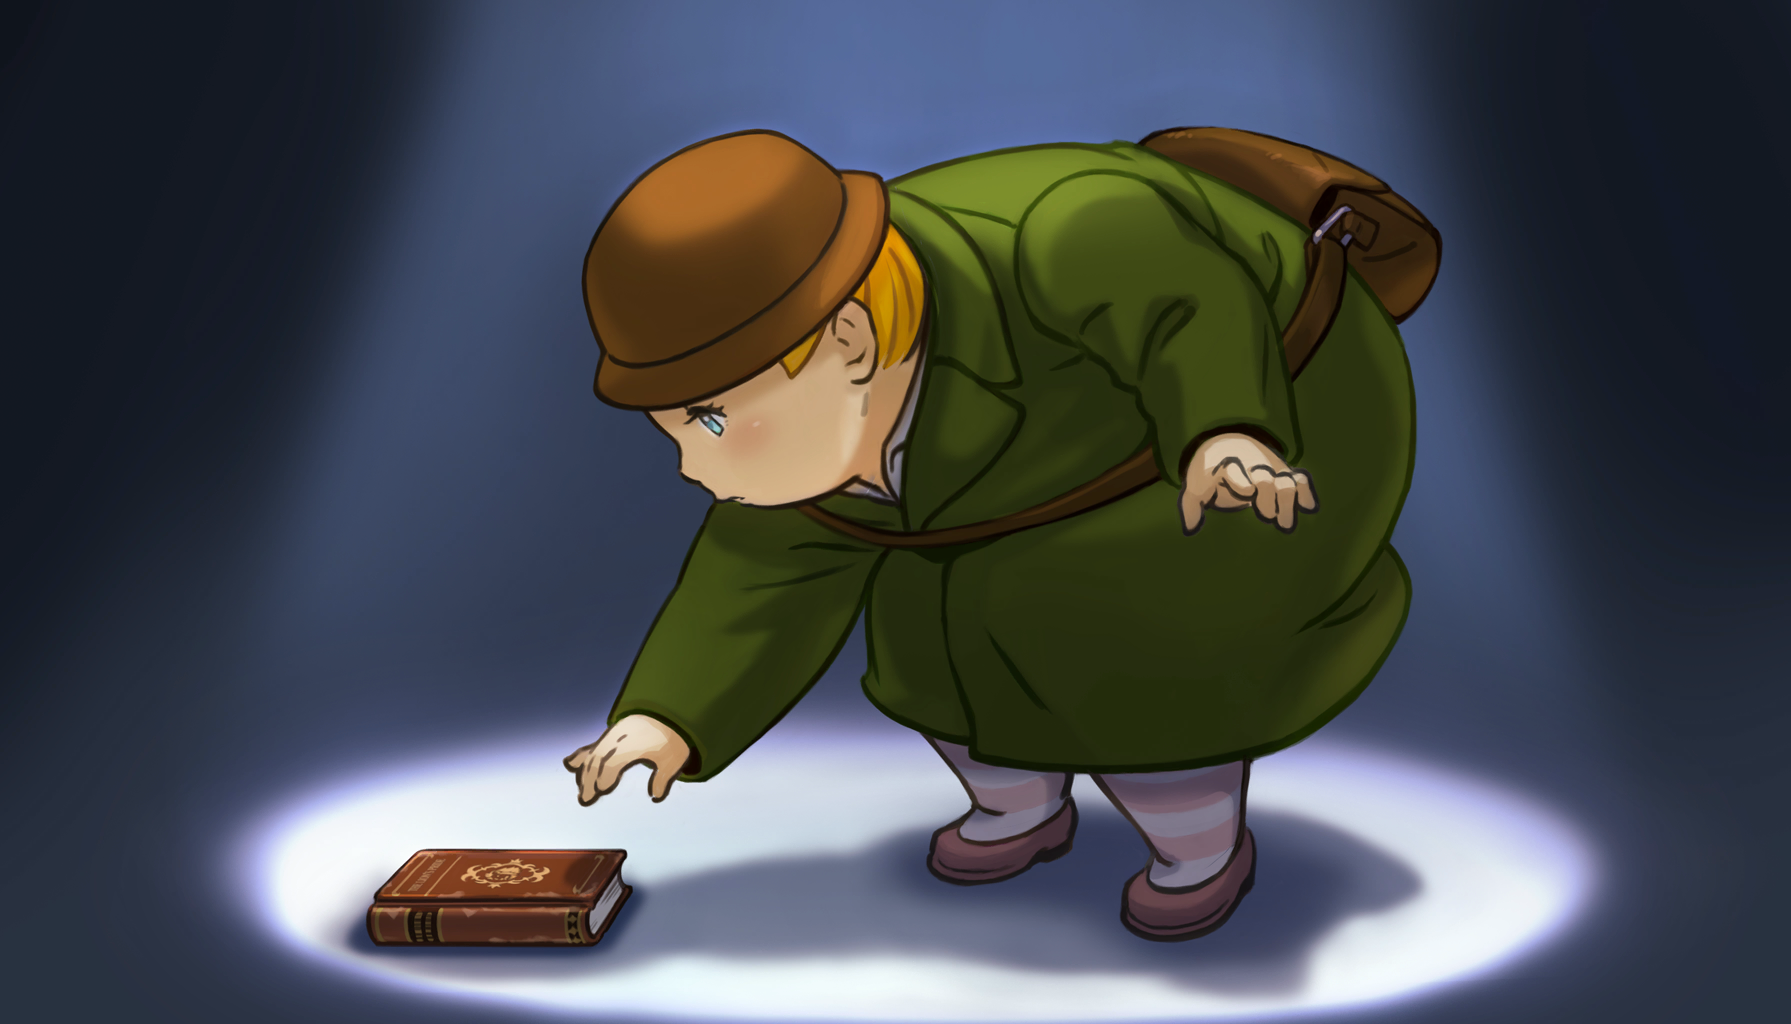 File:Viridian holding a book.png